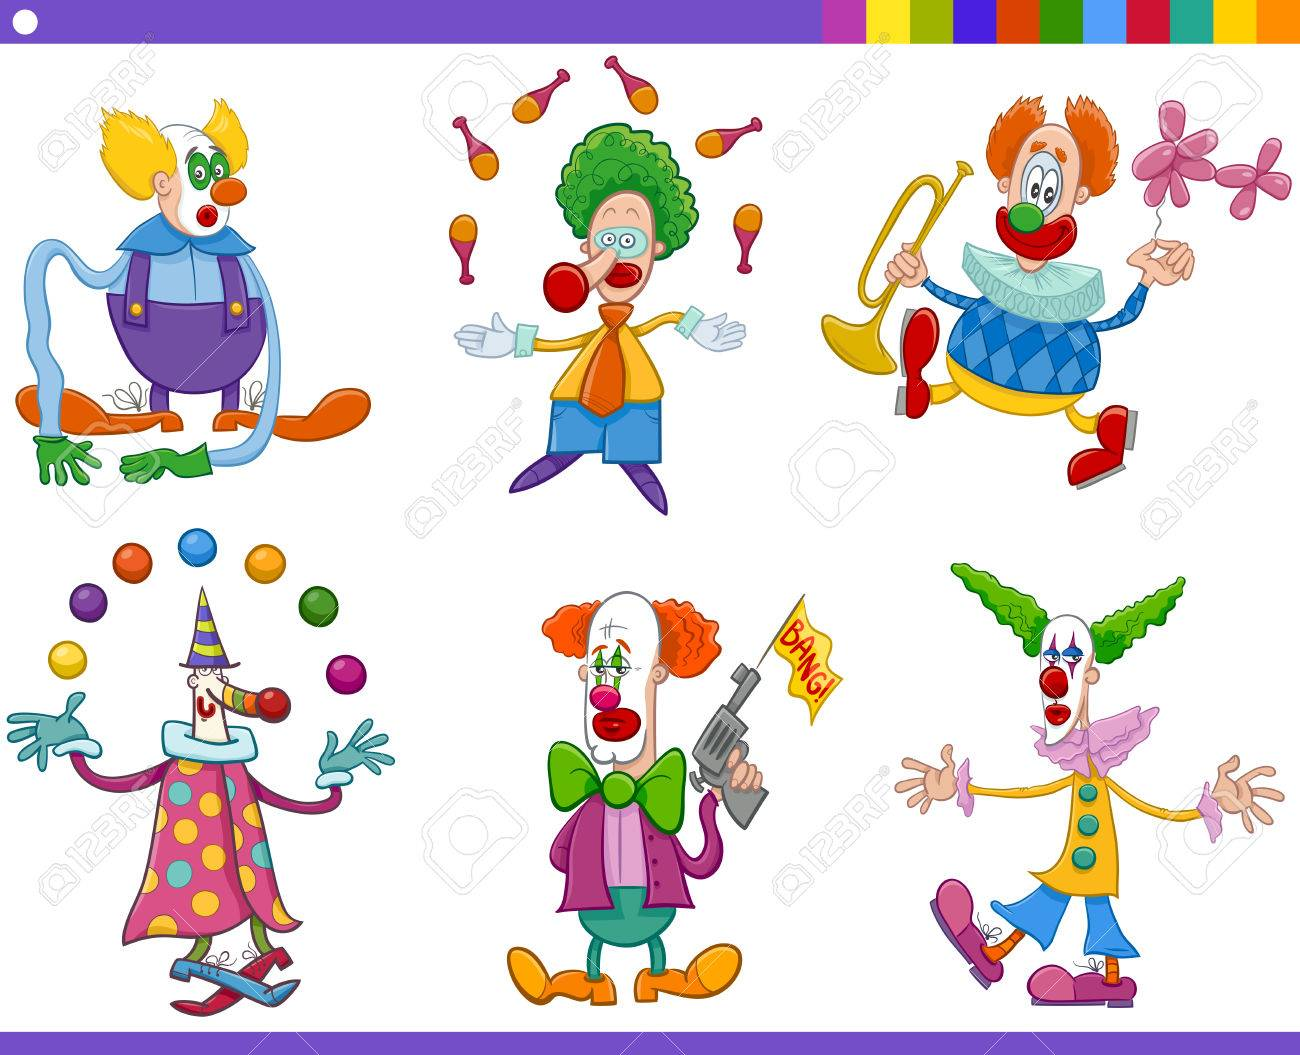 cartoon illustration of circus clown characters collection royalty